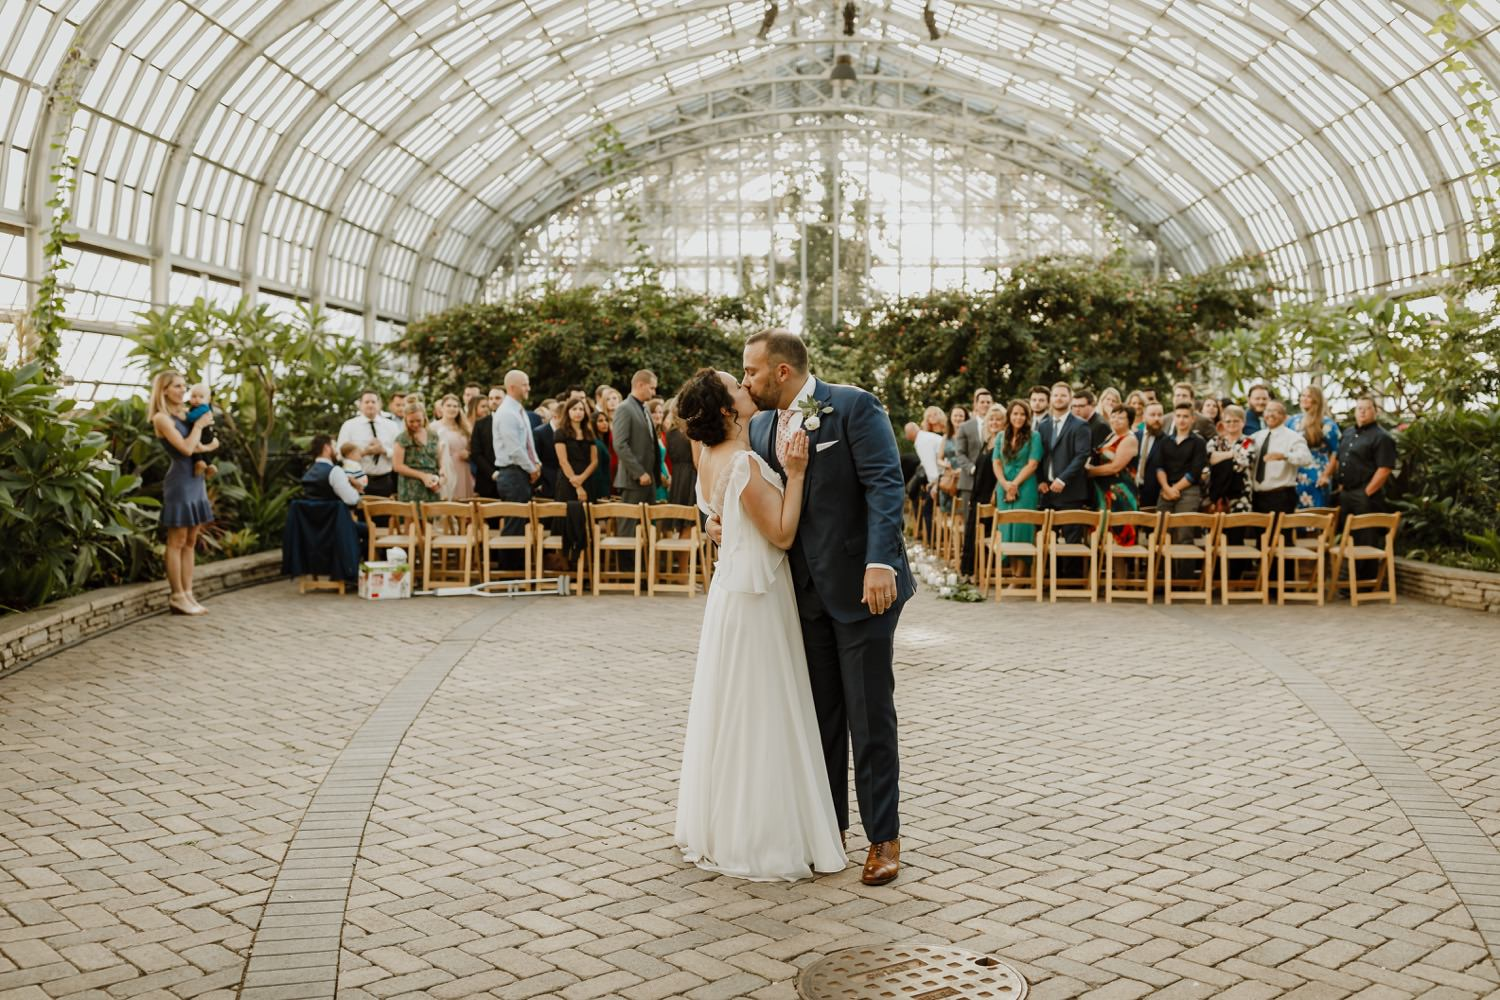 Garfield Park conservatory wedding. Bride and groom kiss after the ceremony.